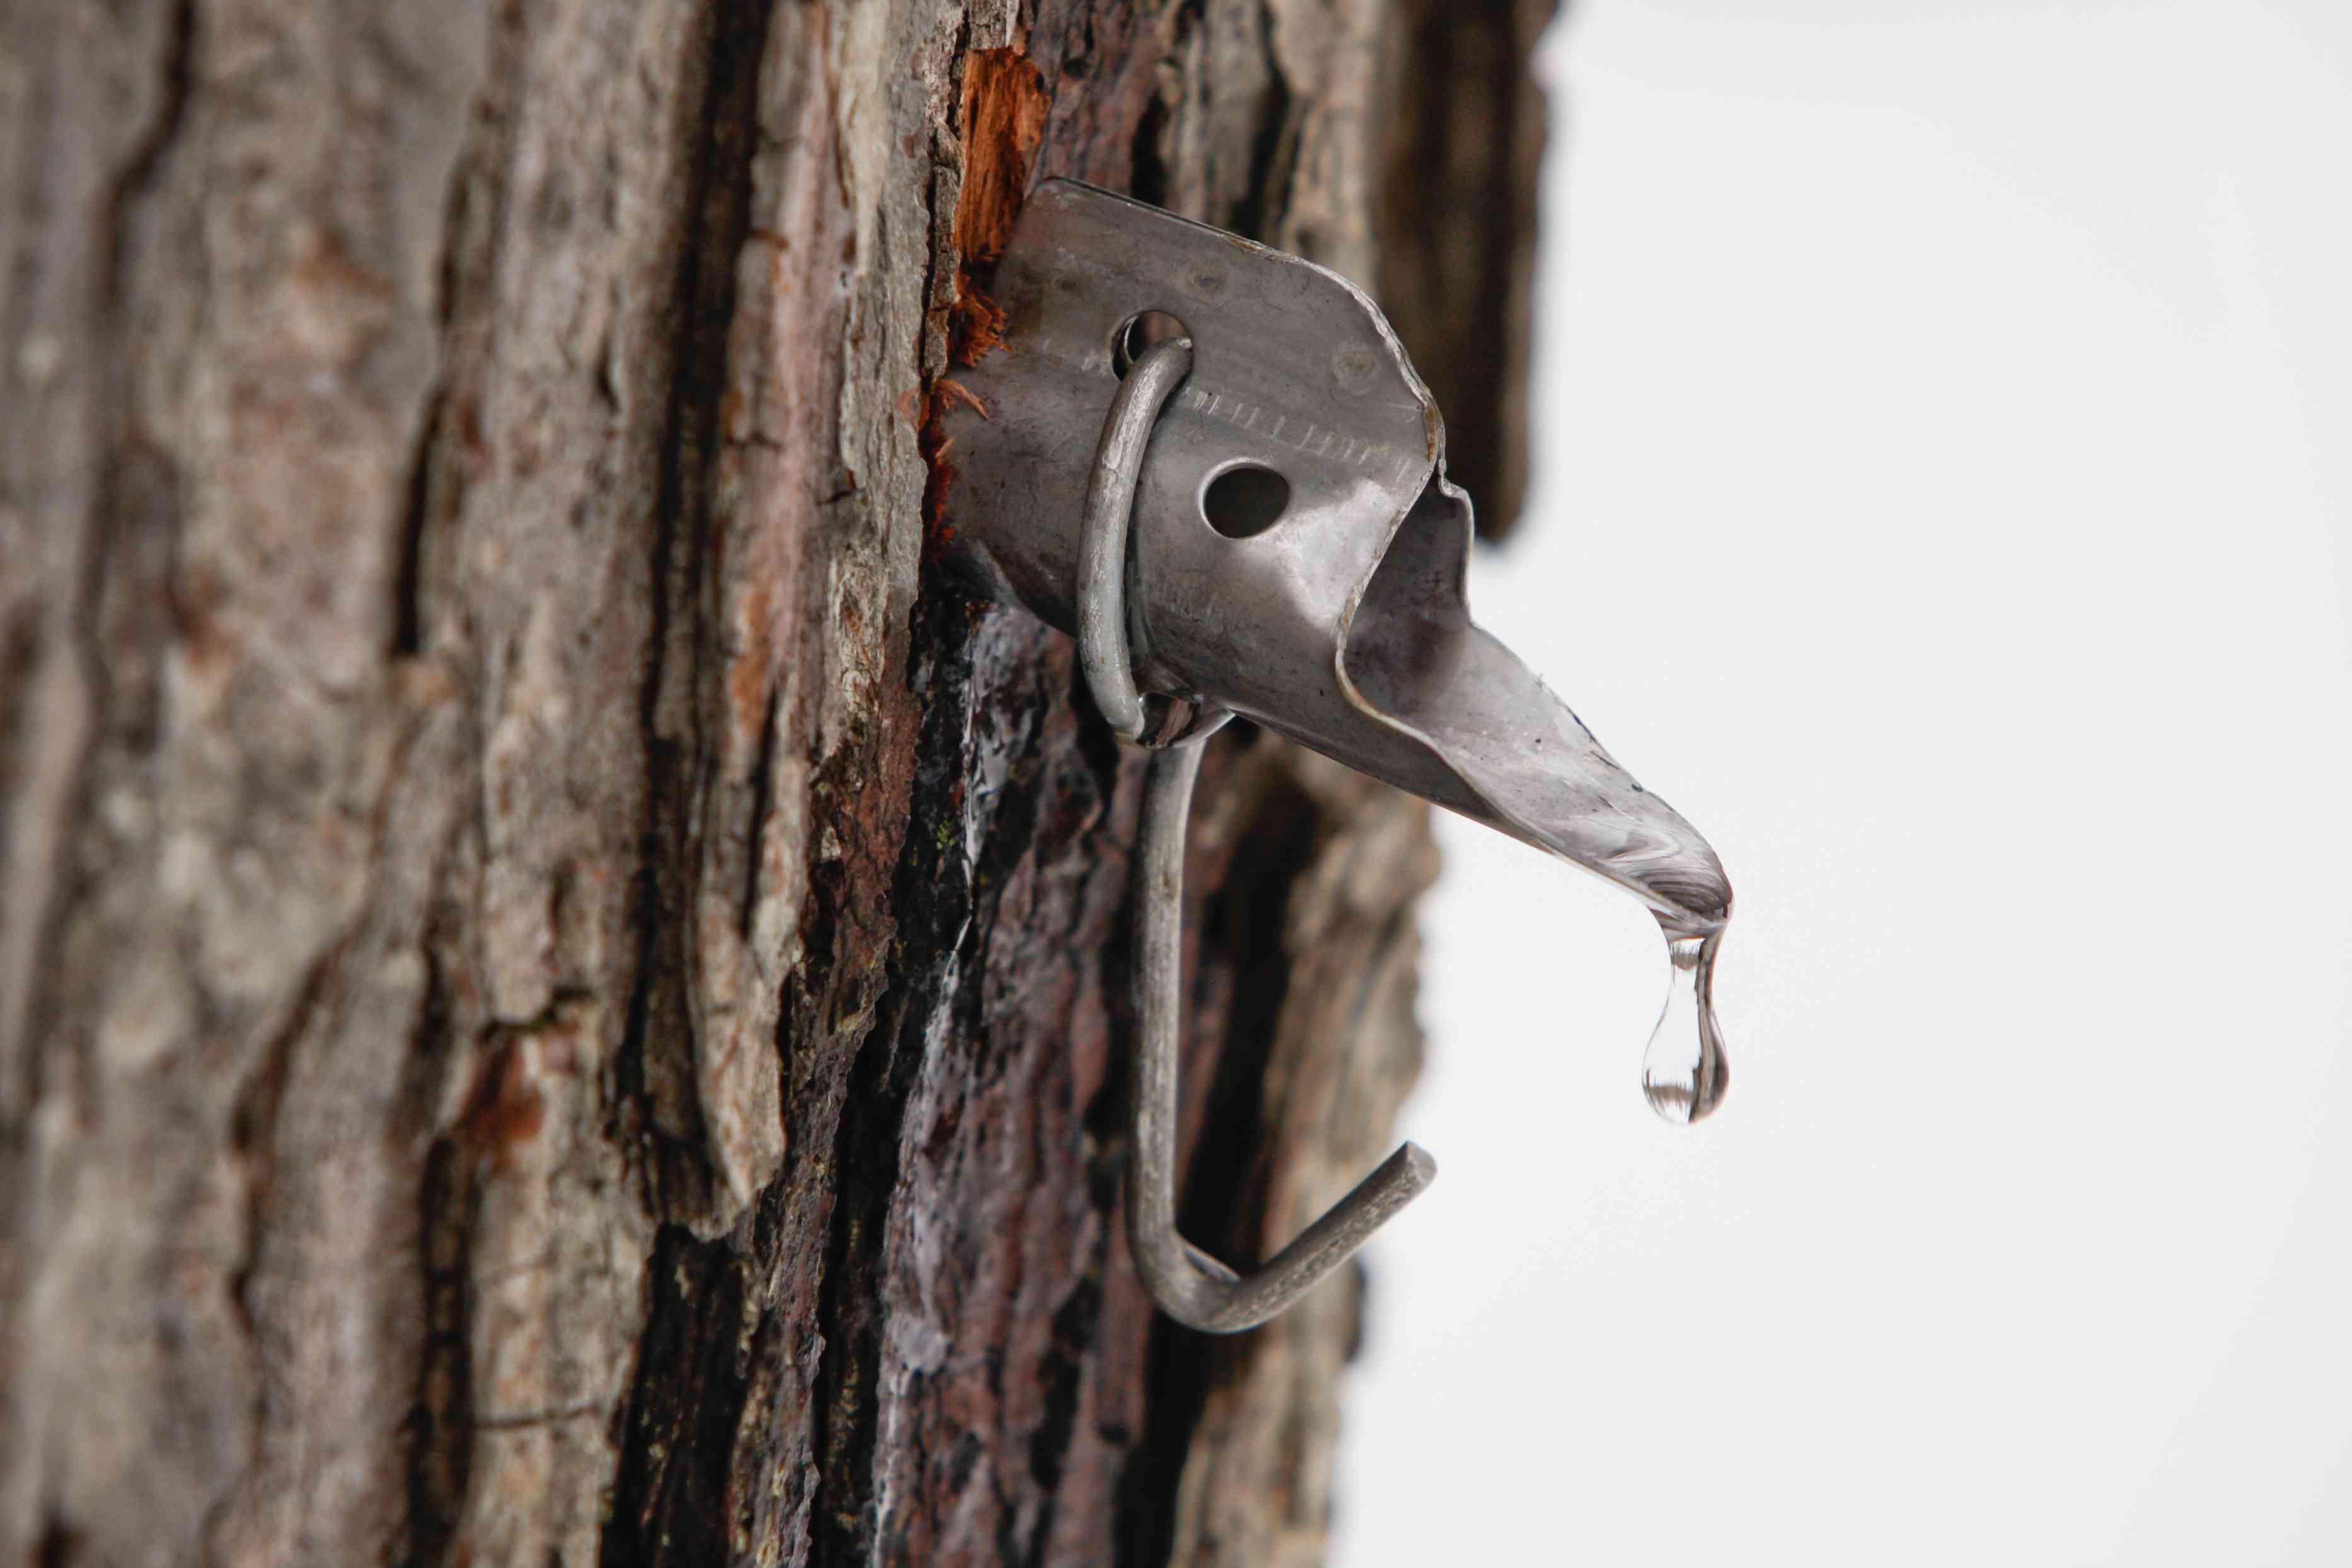 Maple sap droplet flowing from tap in tree, maple syrup health benefits